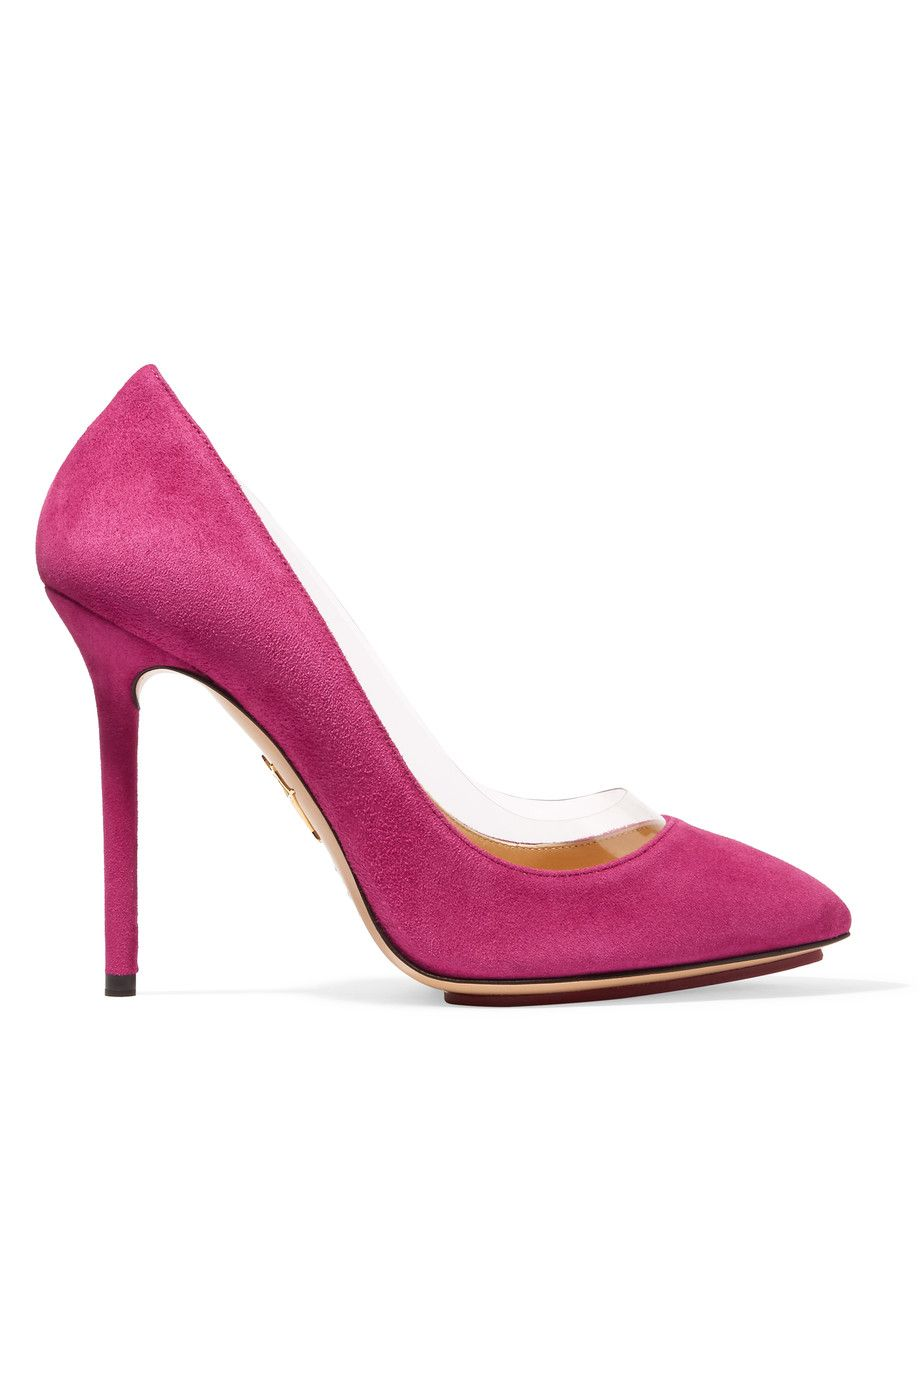 CHARLOTTE OLYMPIA Party Monroe Suede And Pvc Pumps.  charlotteolympia  shoes   pumps 4b8a2024d